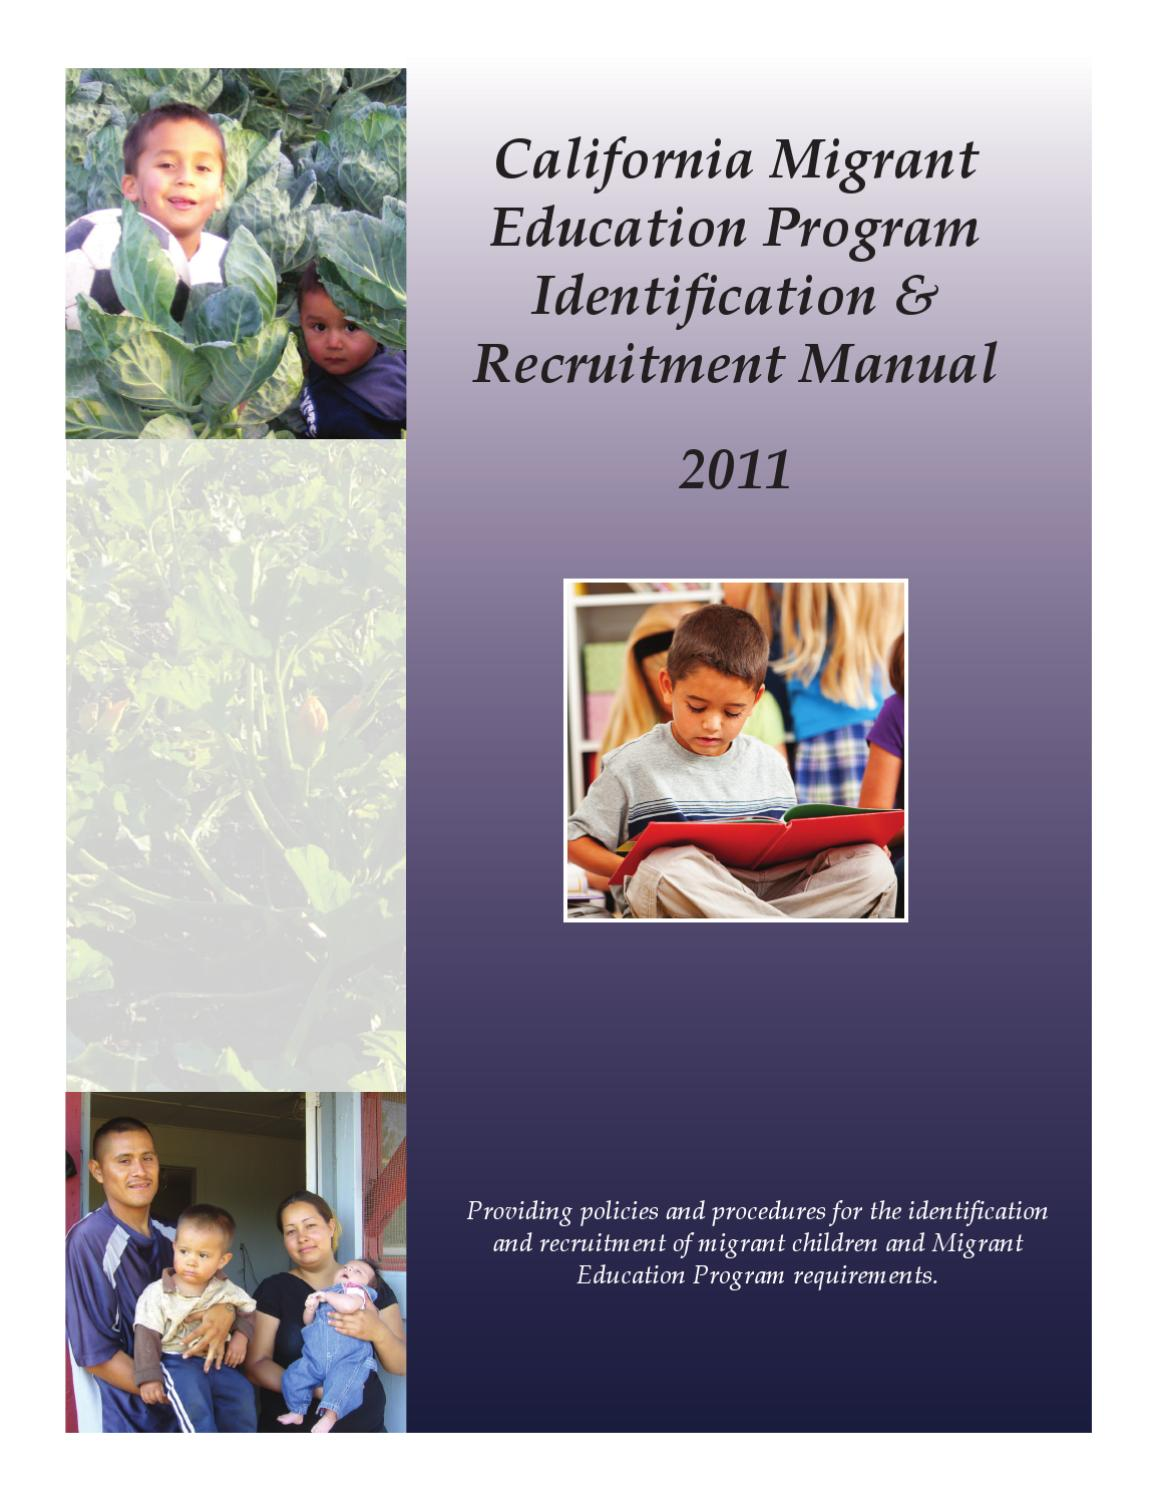 California Migrant Education I&R Manual by Jose Valencia - issuu